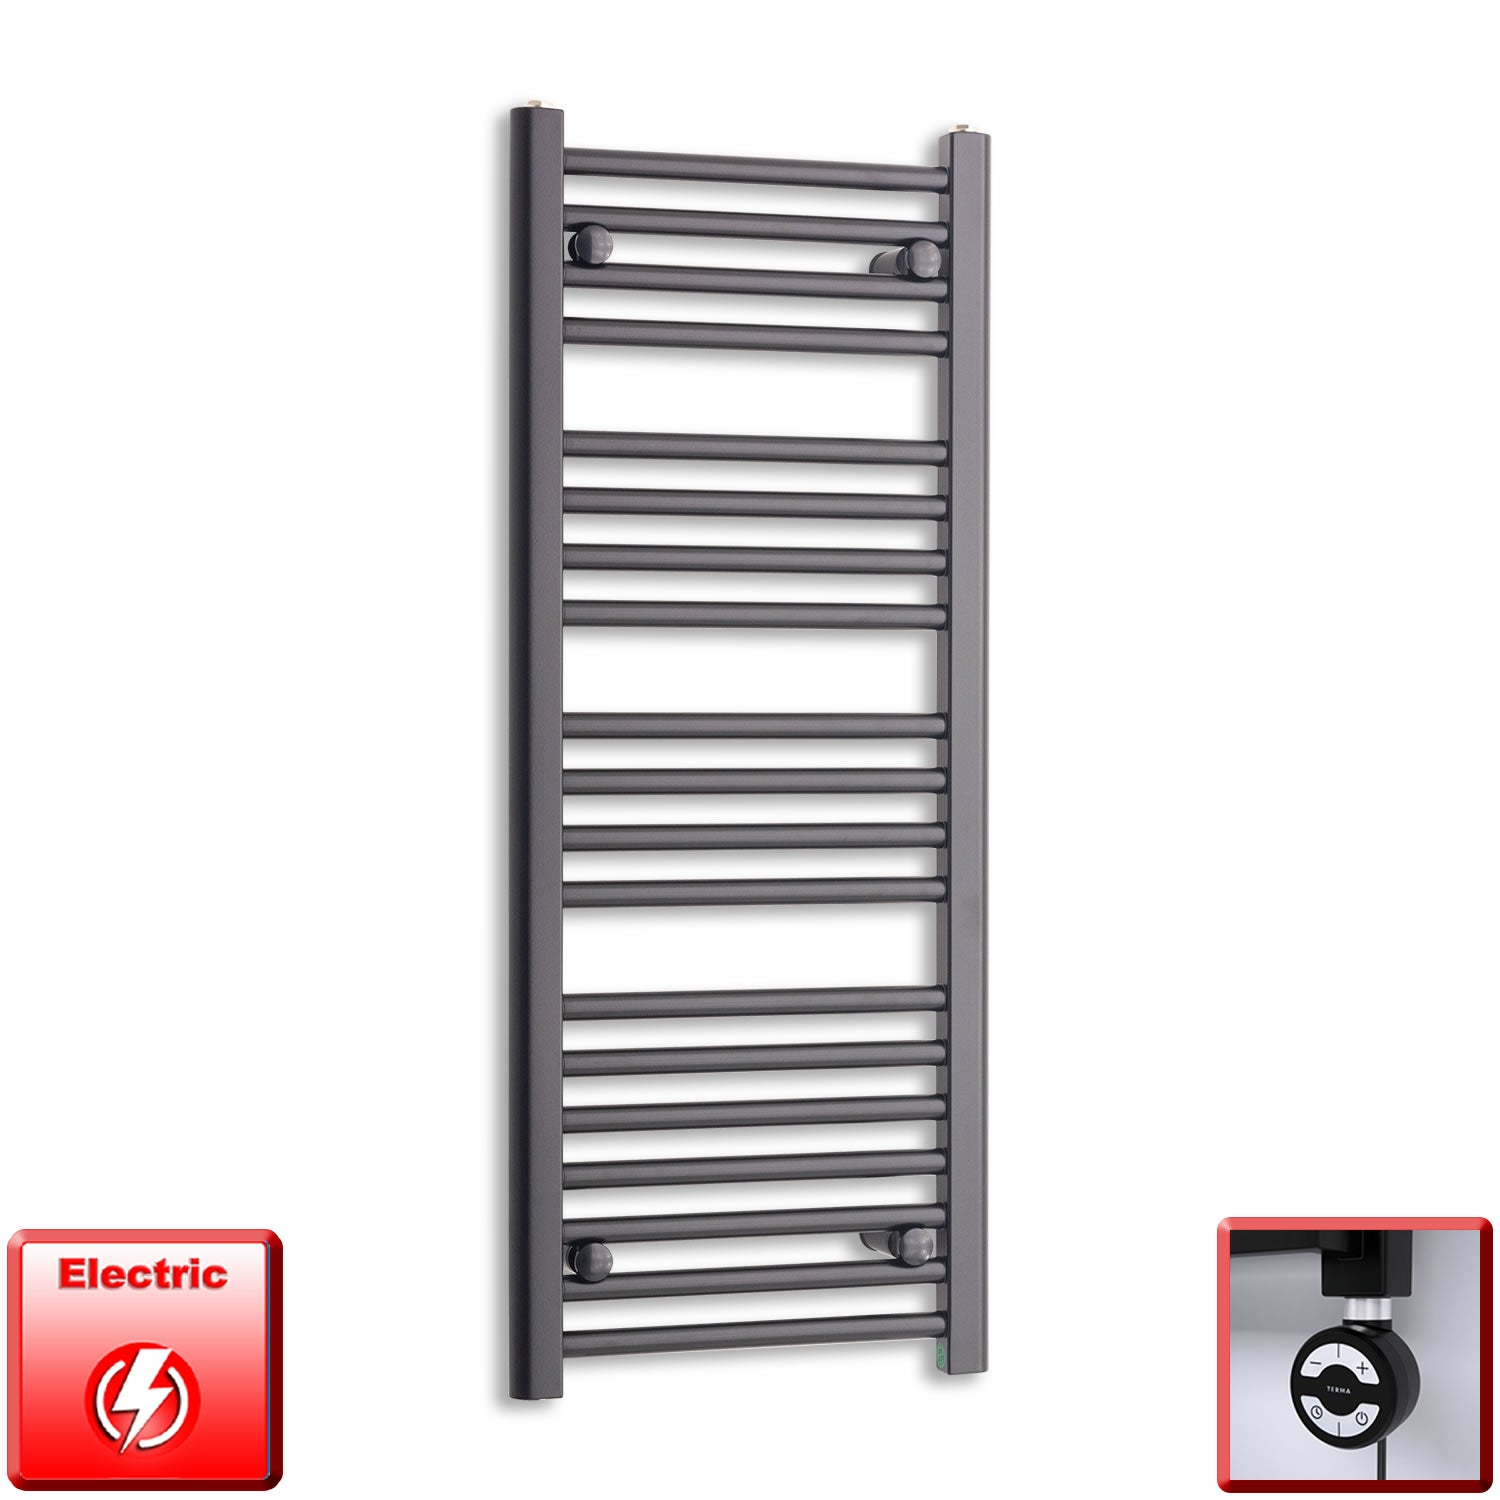 400mm Wide 1000mm High Pre-Filled Black Electric Towel Rail Radiator With Thermostatic MOA Element